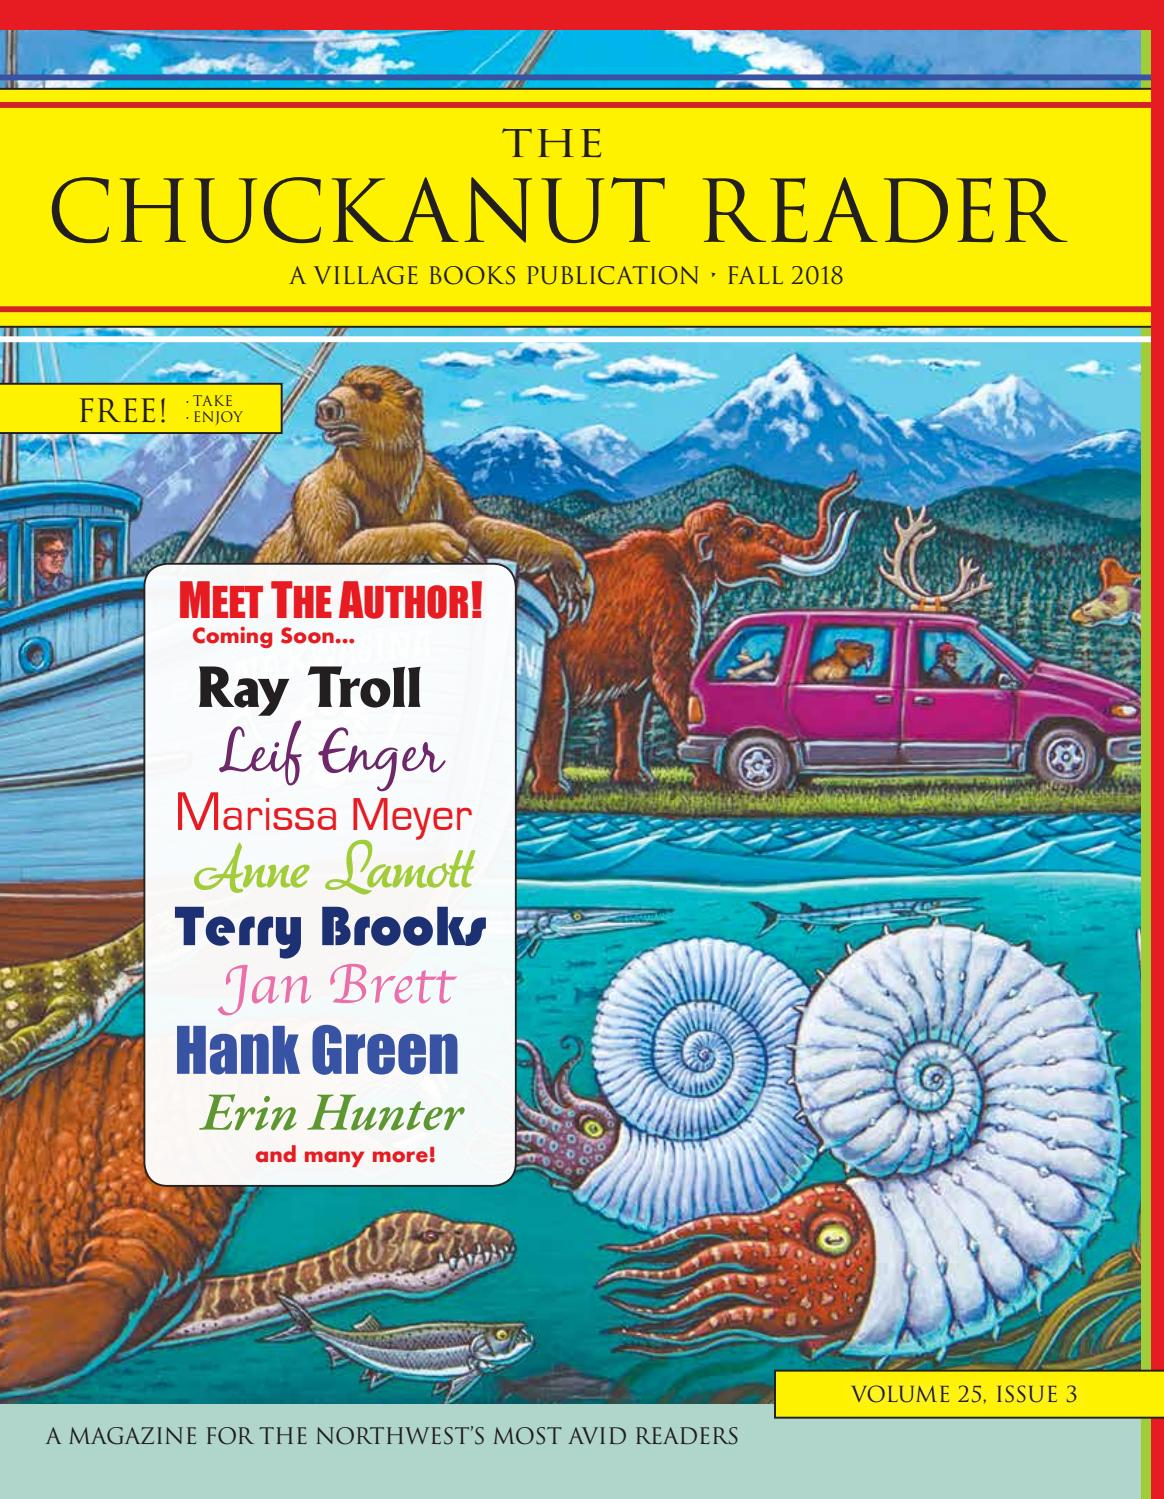 The Chuckanut Reader - Fall 2018 by Village Books & Paper Dreams - issuu